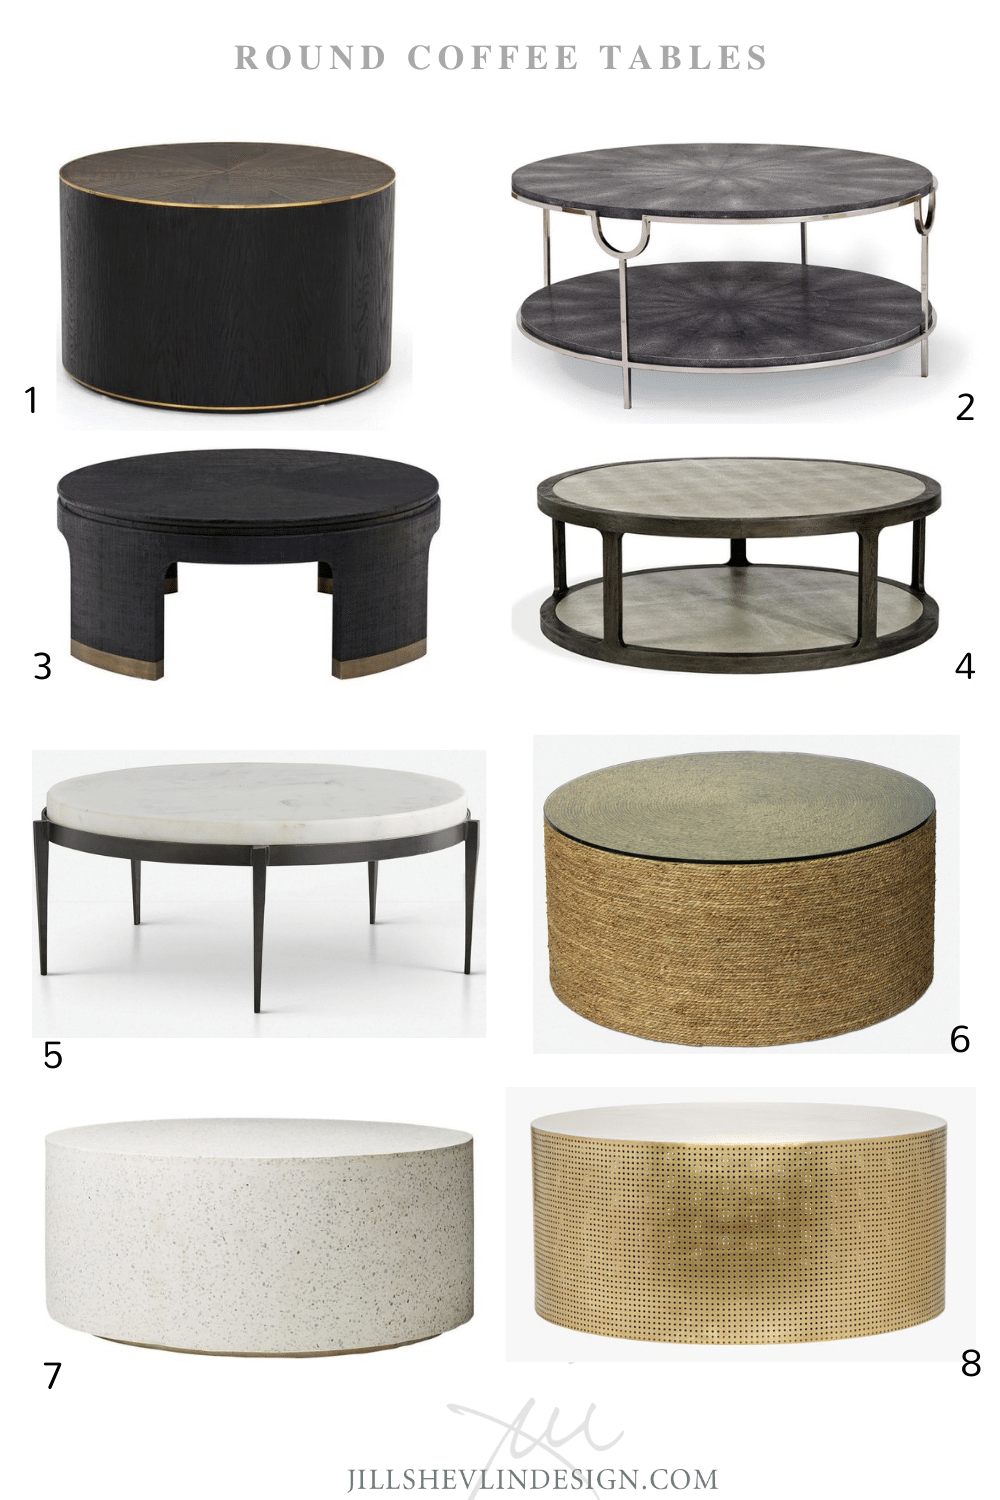 Round Coffee Tables Shop Desinger Approved Coffee Tables of all Shapes and Sizes Jill Shelvin Design Vero Beach interior designer)